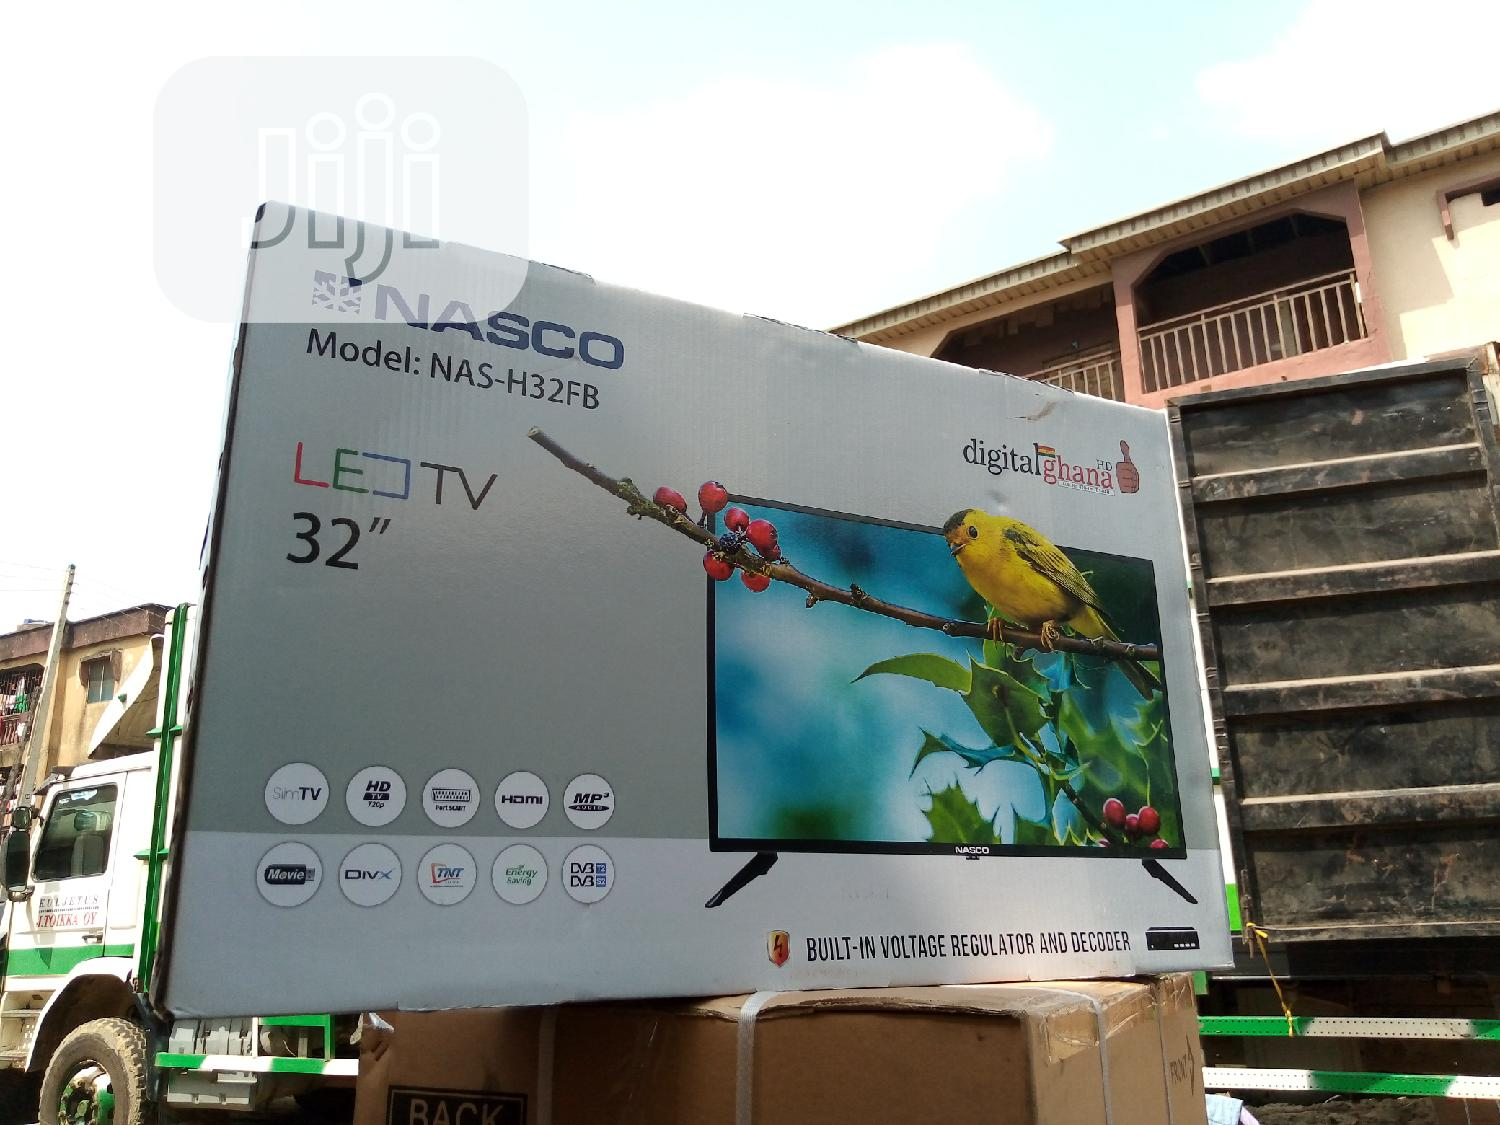 Brand New Nasco Led Full Hd 32inch Satellite TV | TV & DVD Equipment for sale in Ojo, Lagos State, Nigeria